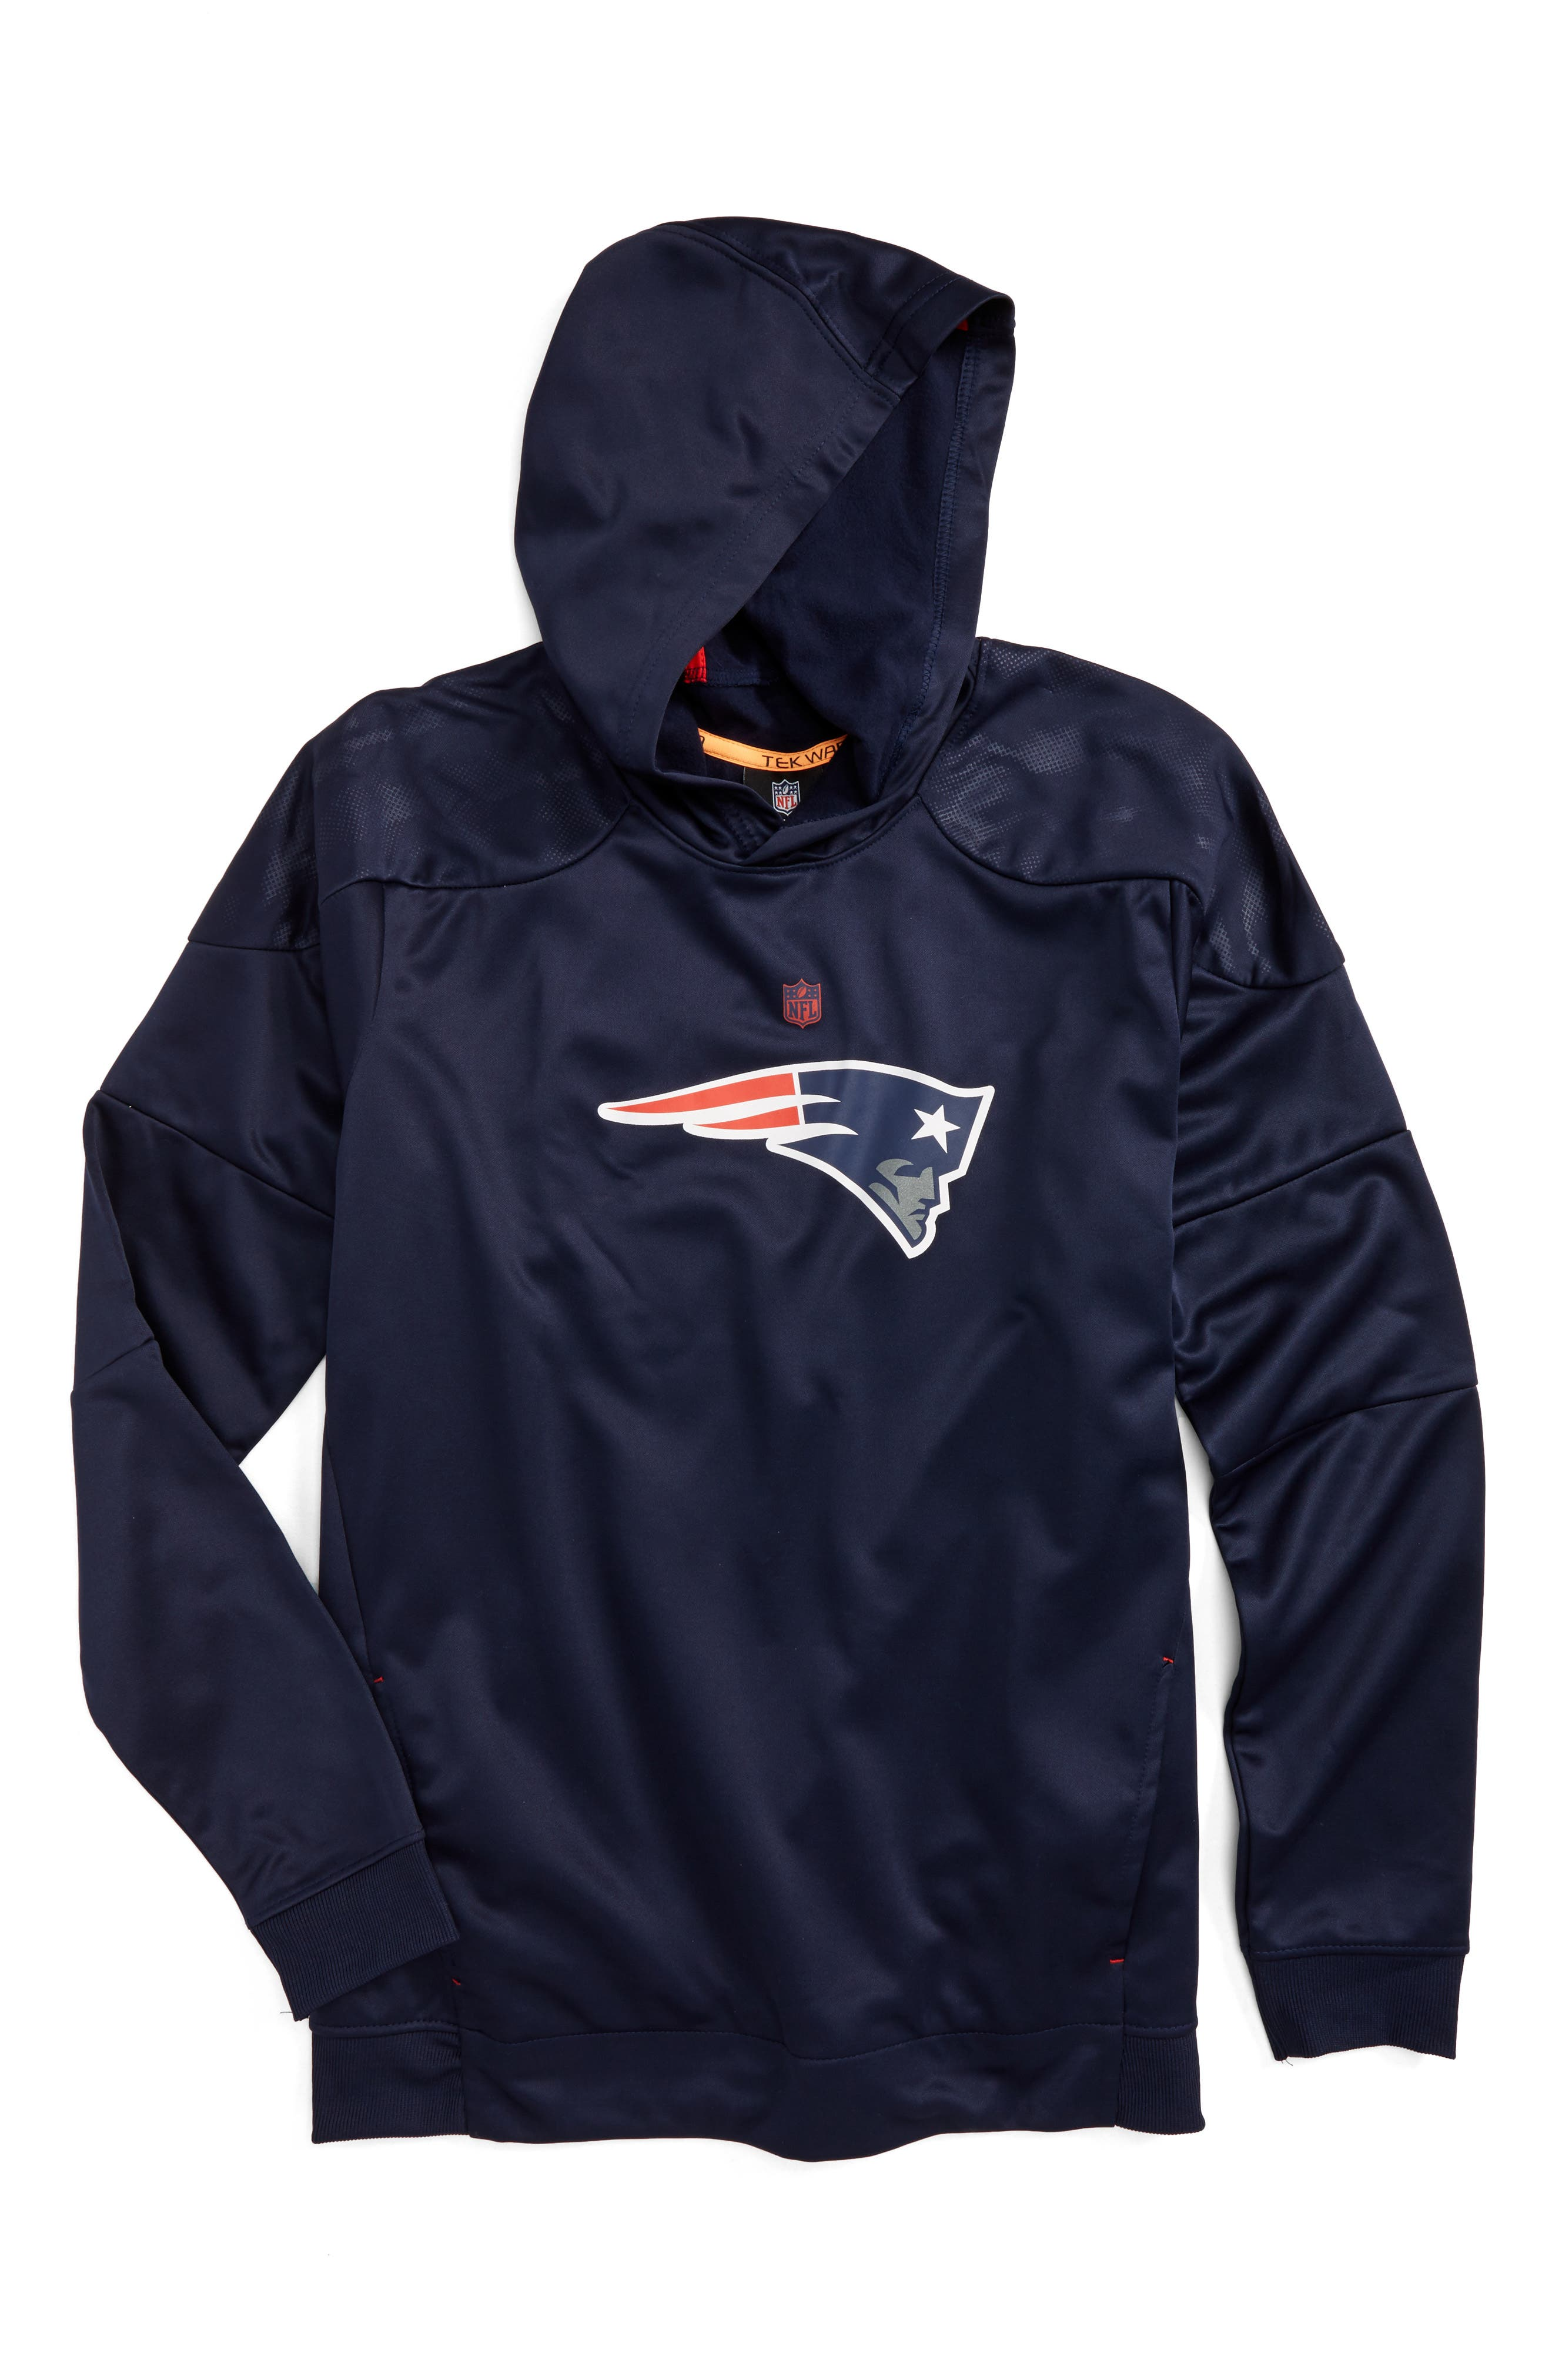 Alternate Image 1 Selected - Outerstuff NFL New England Patriots Hoodie (Big Boys)